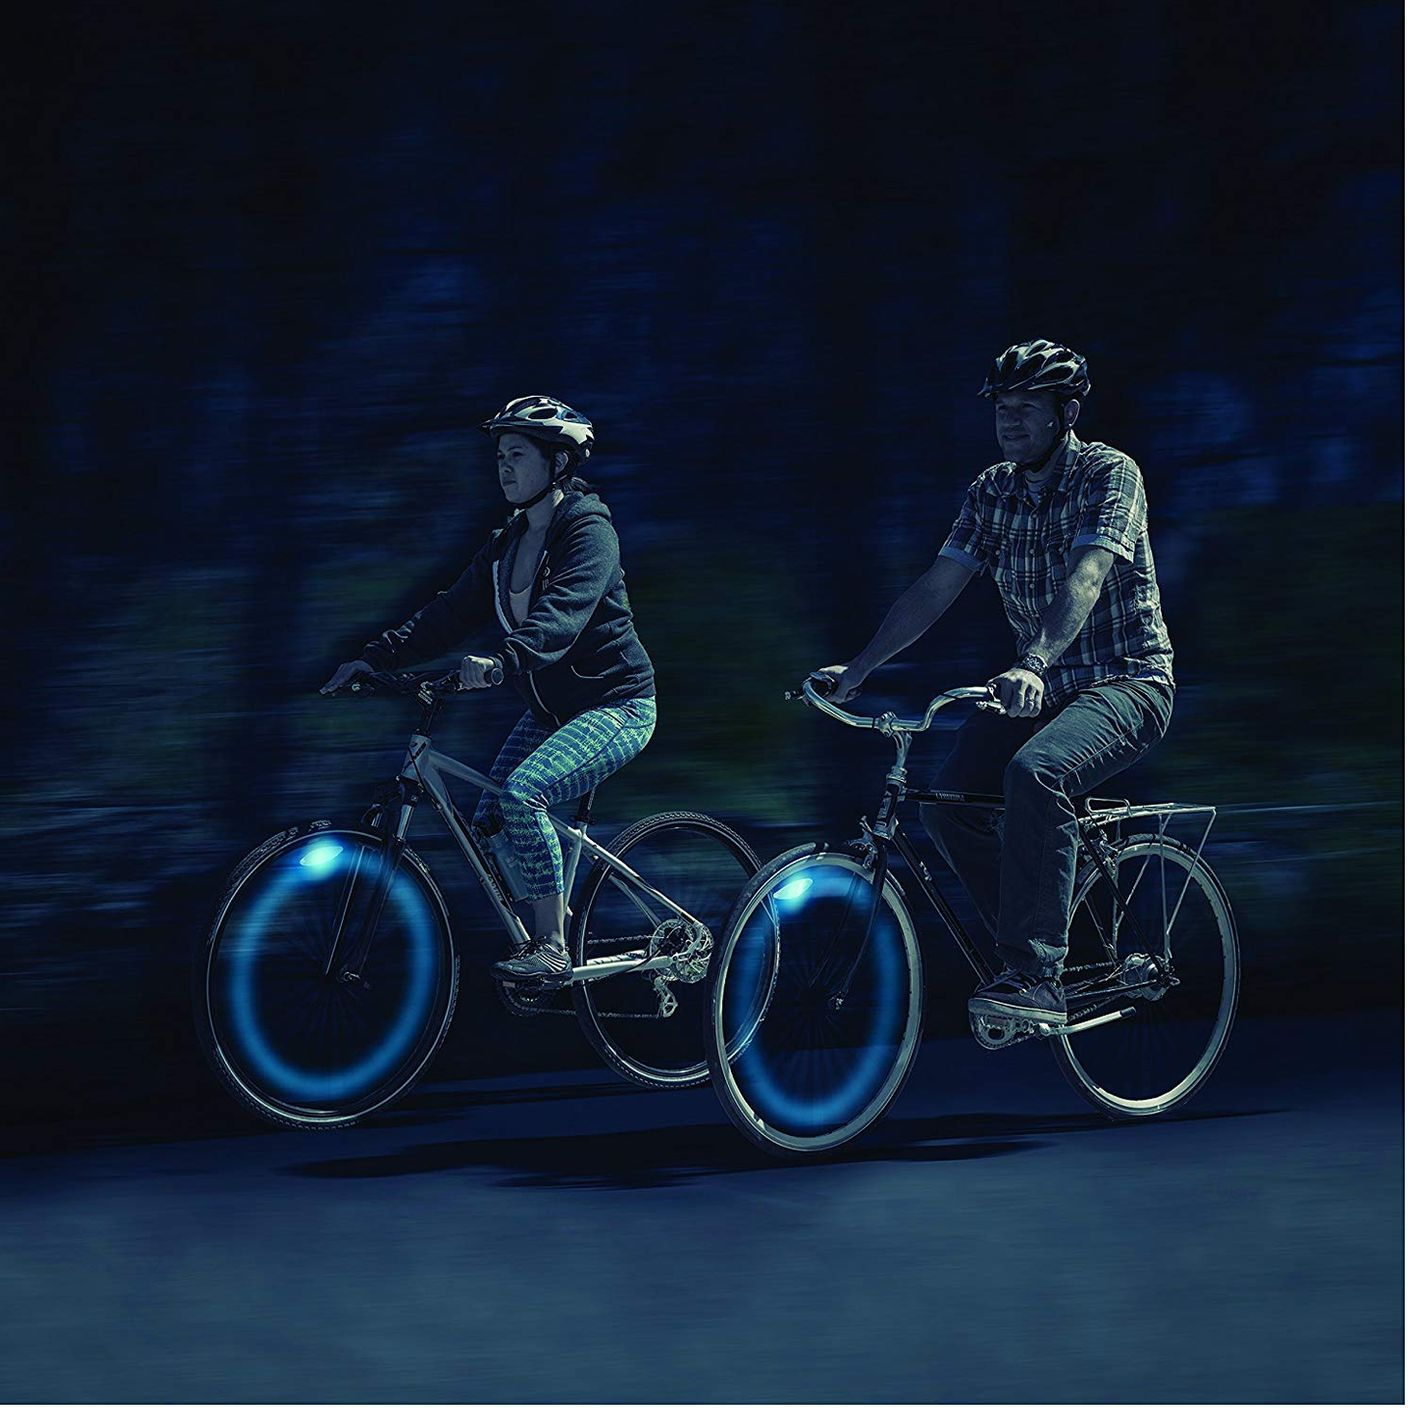 Nite Ize SpokeLit LED Bicycle Spoke Light